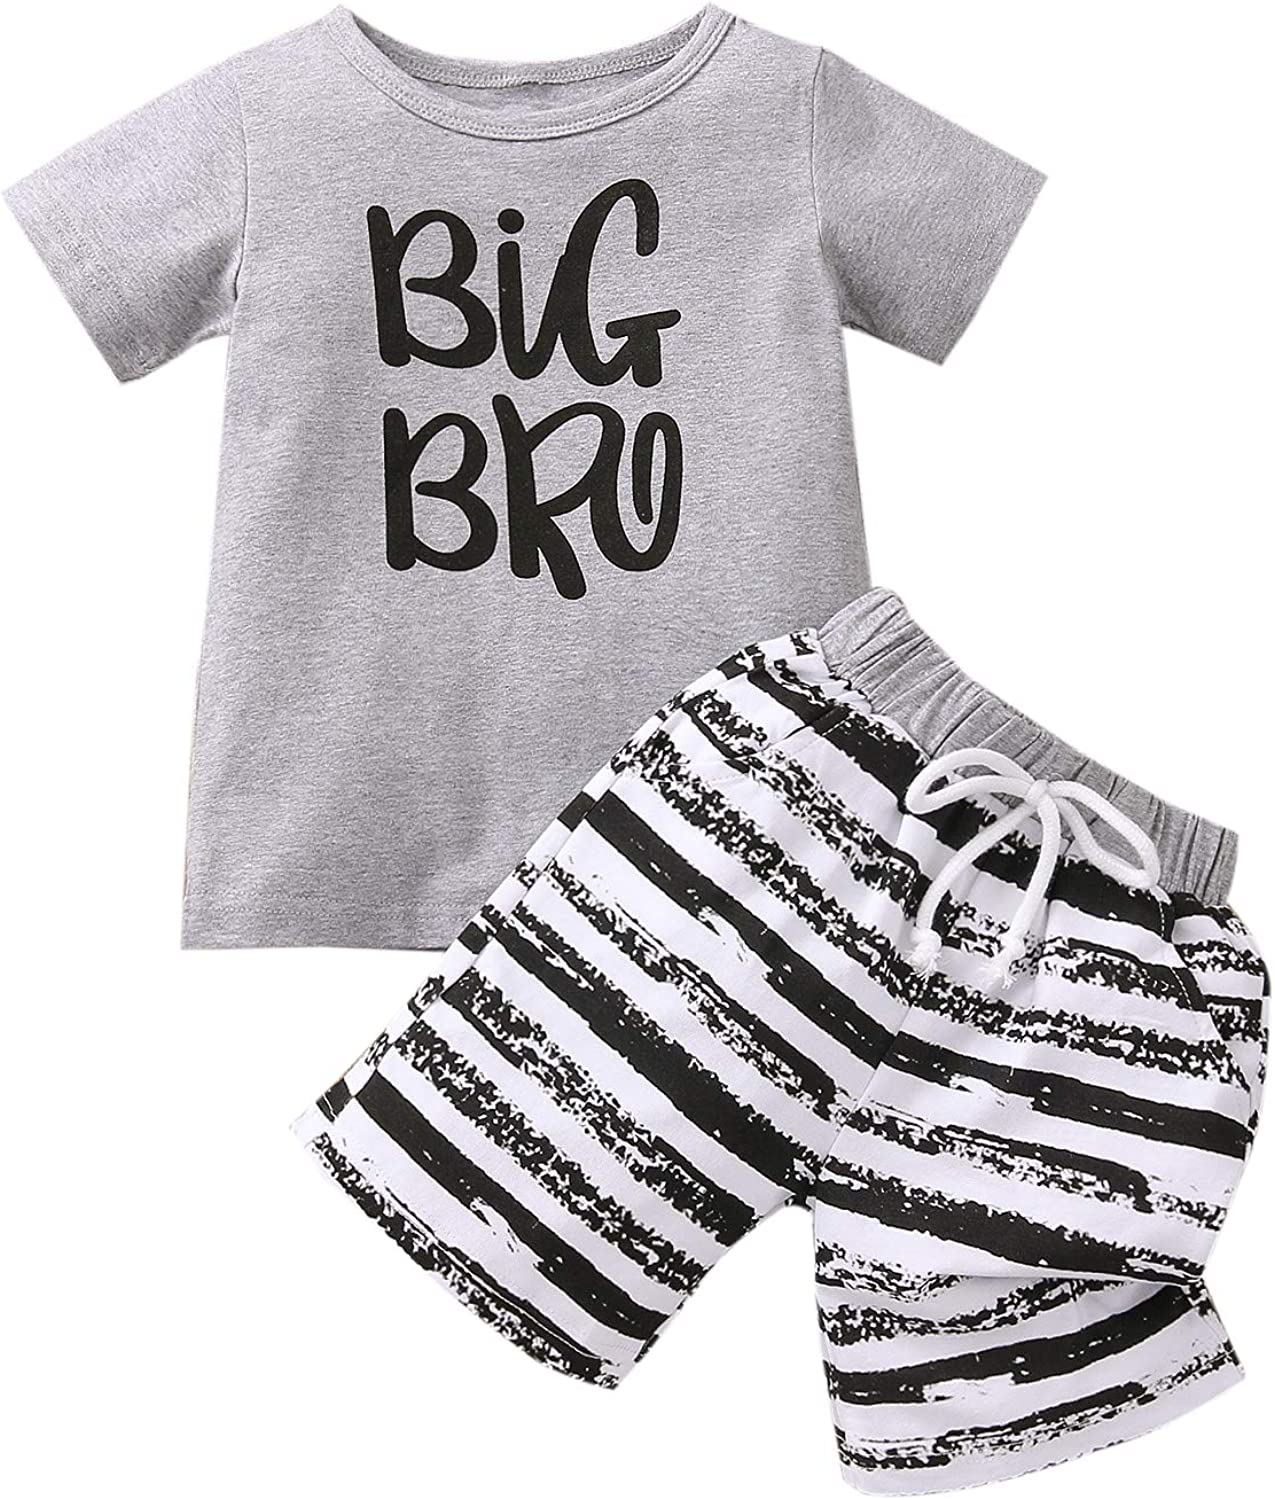 Toddler Infant Baby Boy Clothes Short Sleeve T-Shirts Tops and Striped Shorts Set 2 Piece Summer Outfits